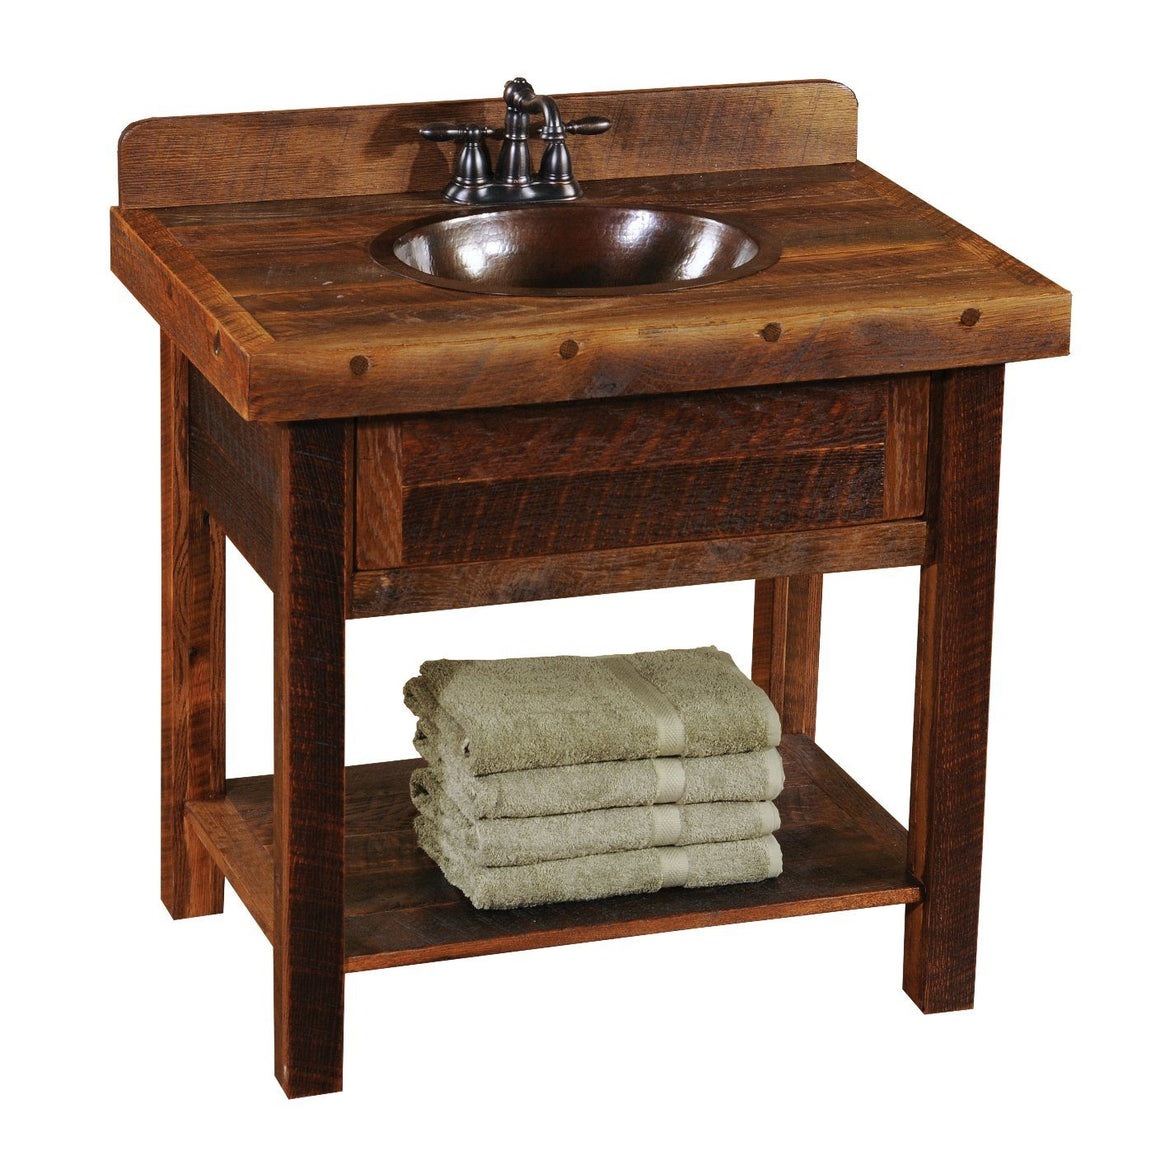 Barnwood Freestanding Open Vanity with Shelf - Artisan Top-Rustic Deco Incorporated